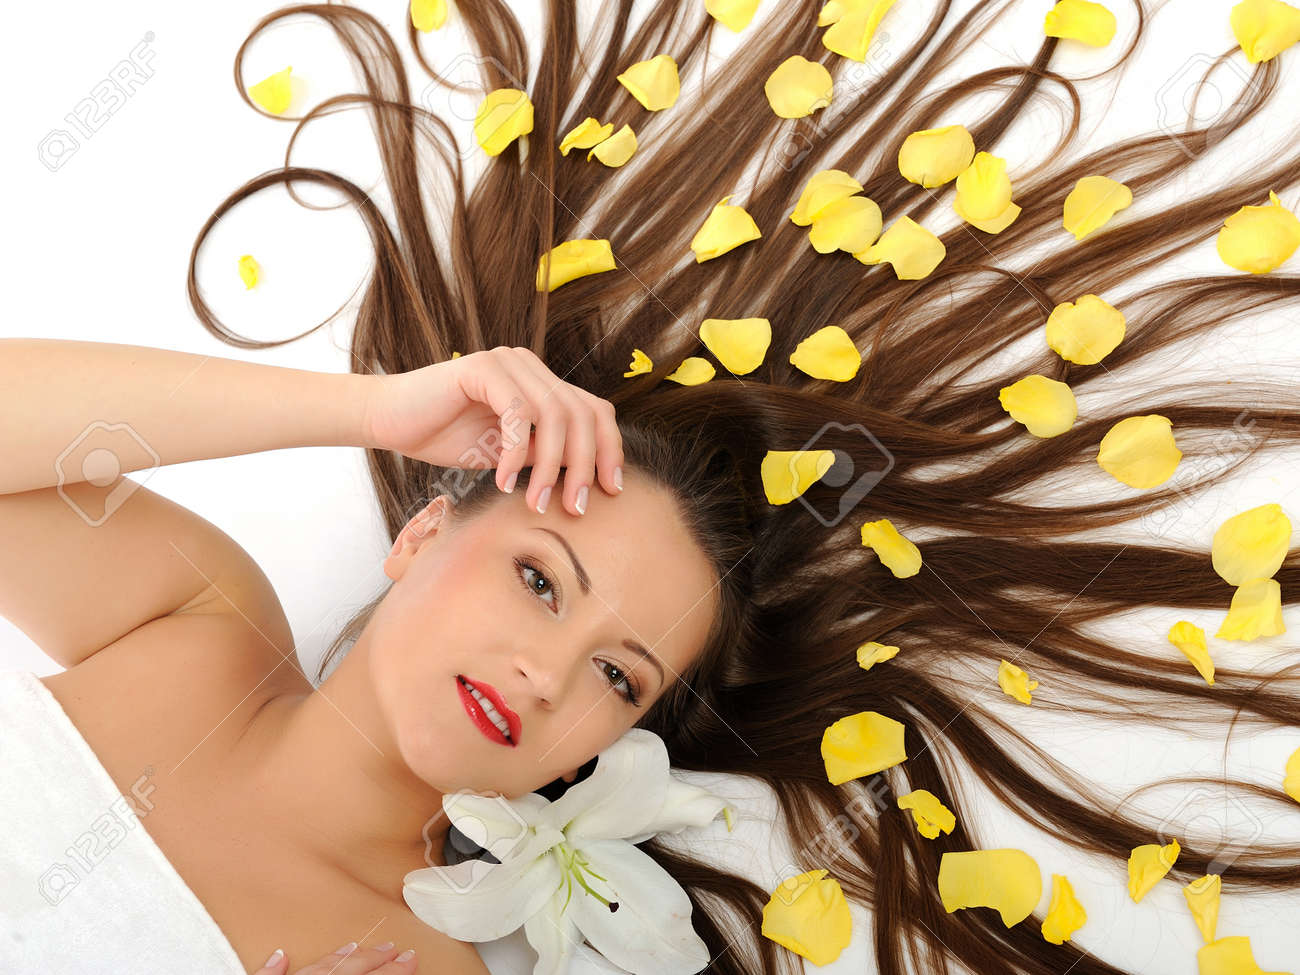 Beautiful spa woman with long healthy hair and bright make-up relaxing on the floor with yellow rose petals. isolated on white background Stock Photo - 8365647